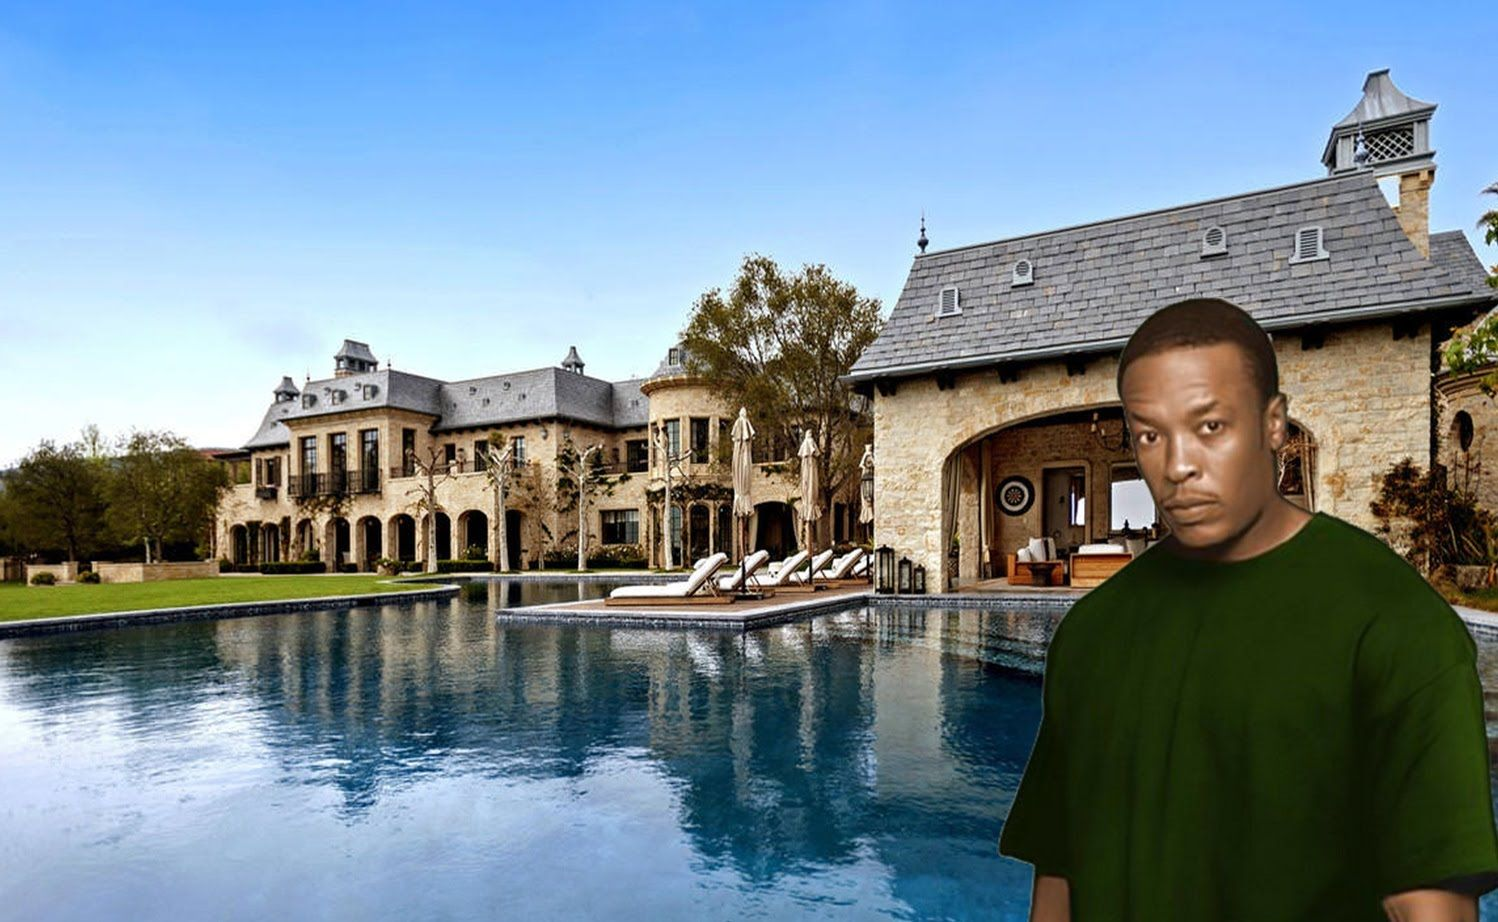 Dr Dre S House 2016 35 Million Inside Outside Inside